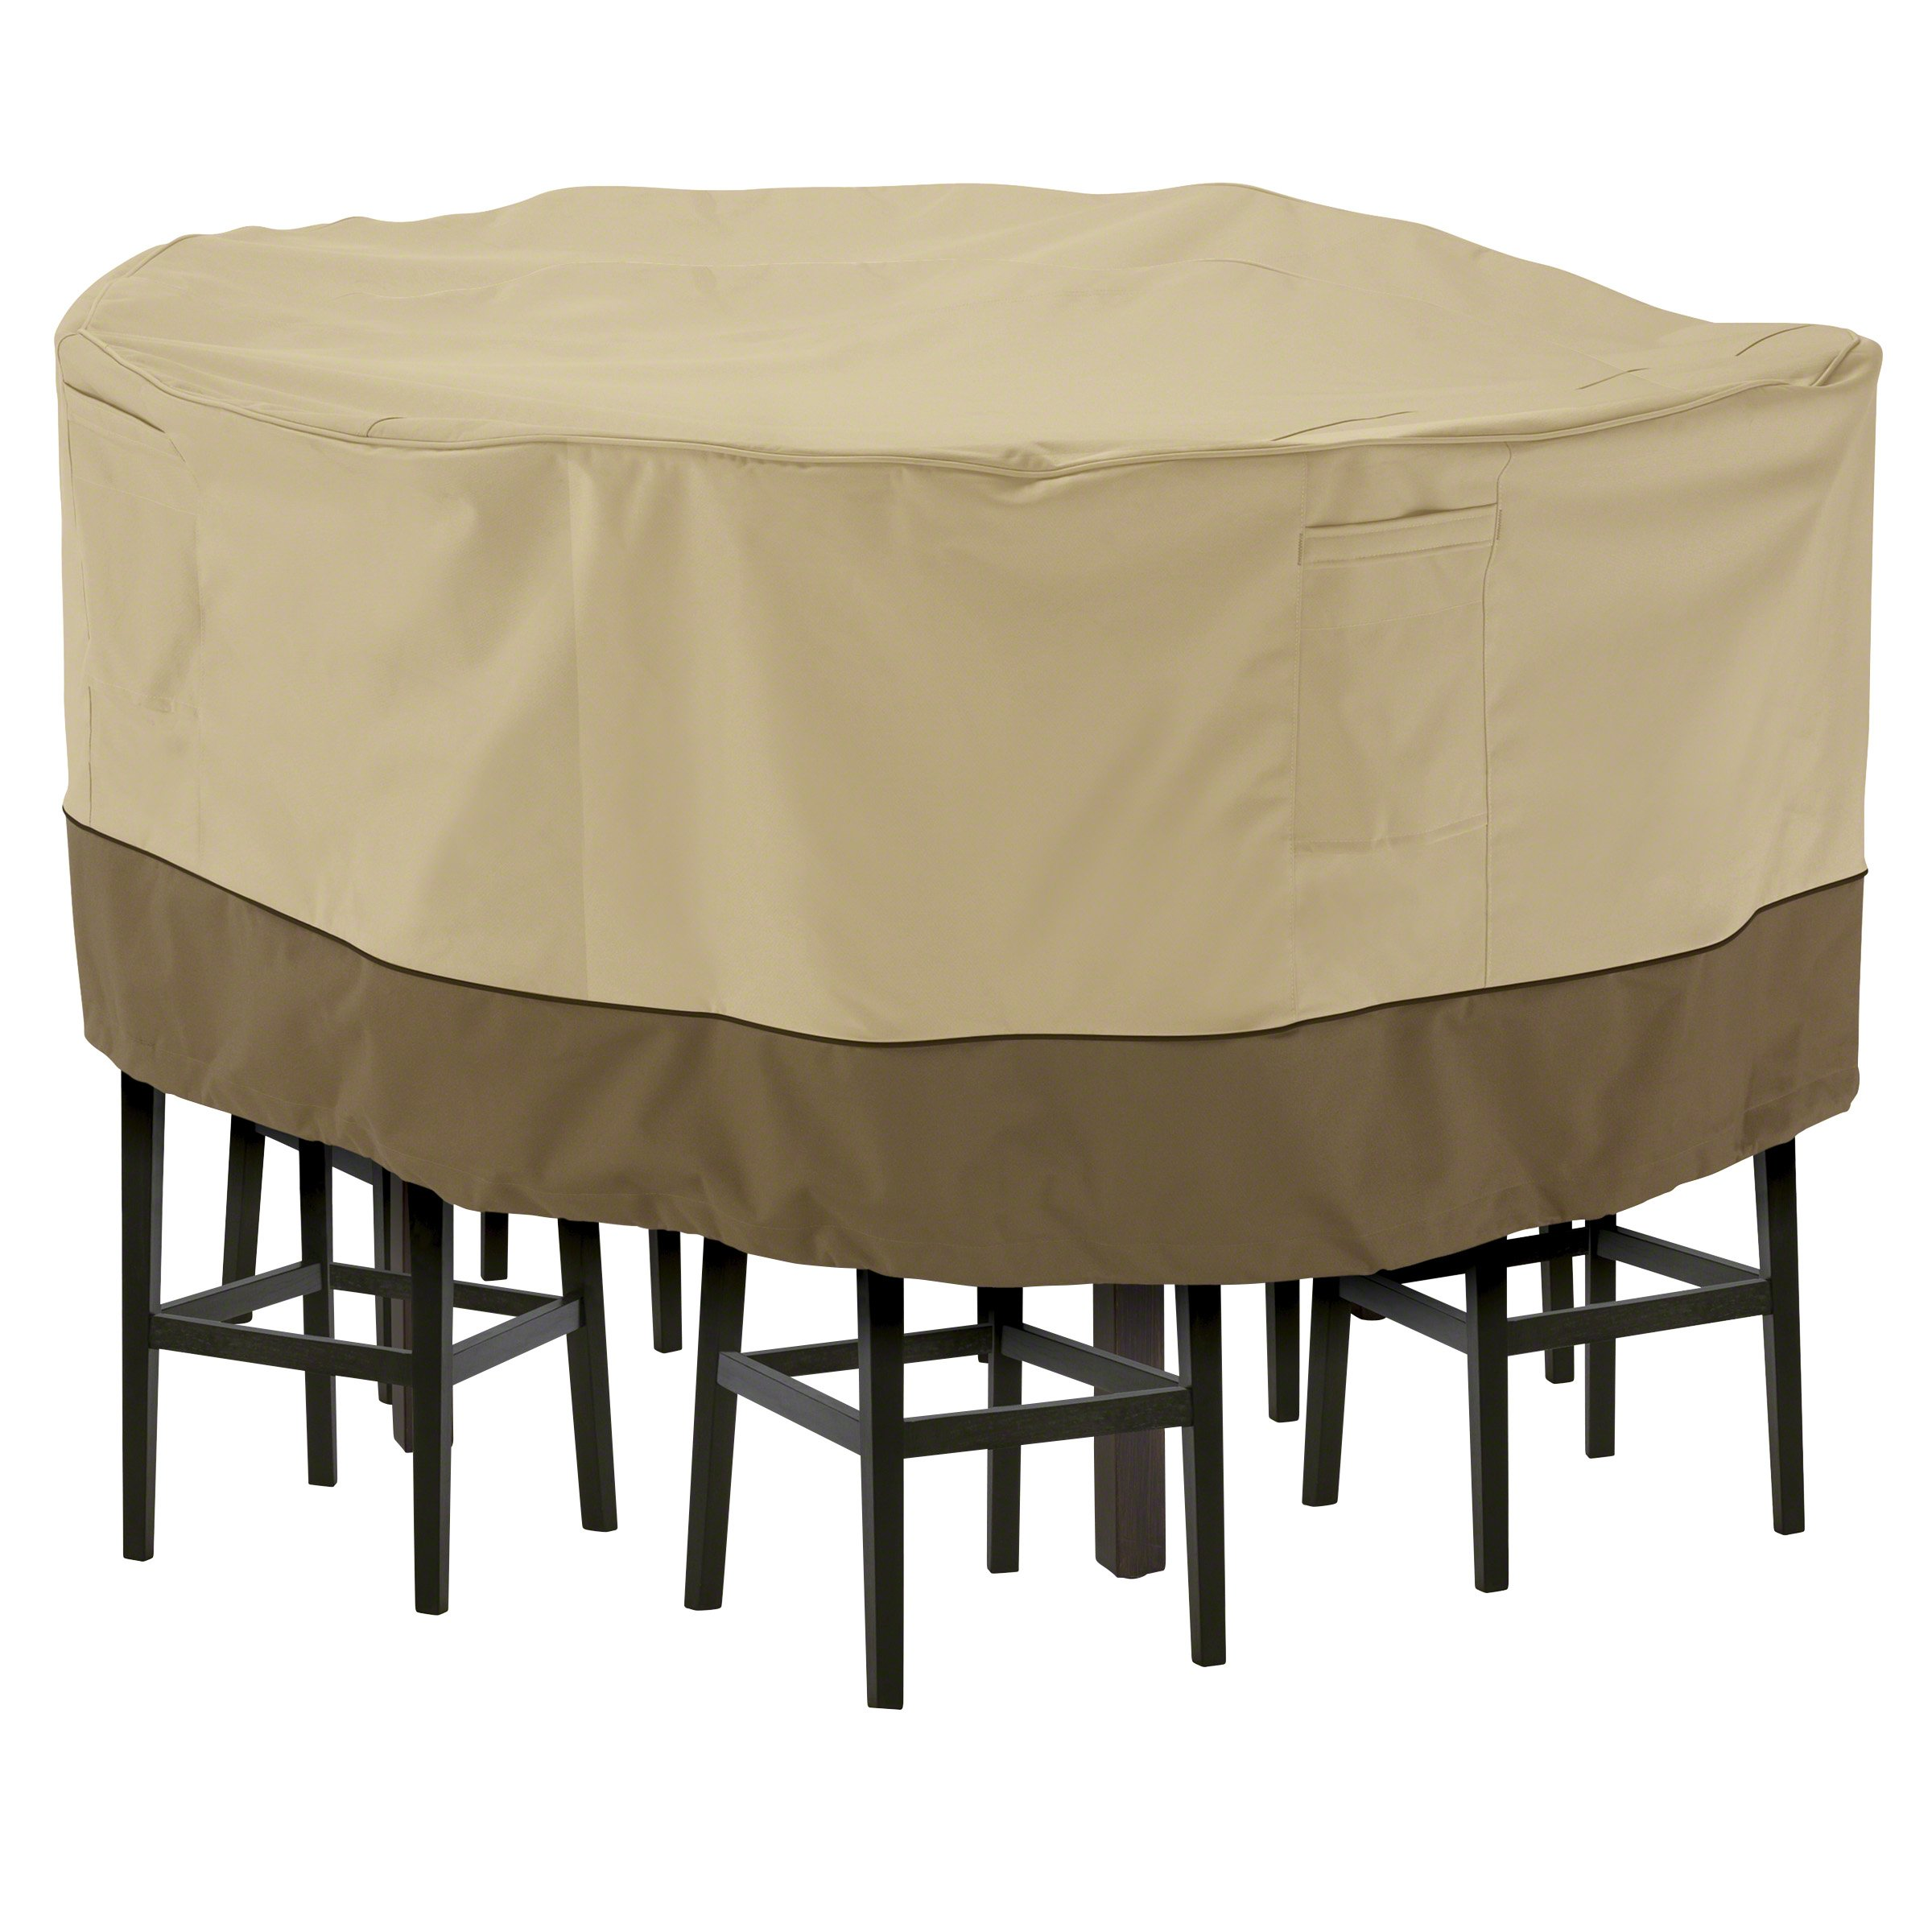 Classic Accessories Veranda Tall Round Patio Table & Chairs Cover, Large by Classic Accessories (Image #1)